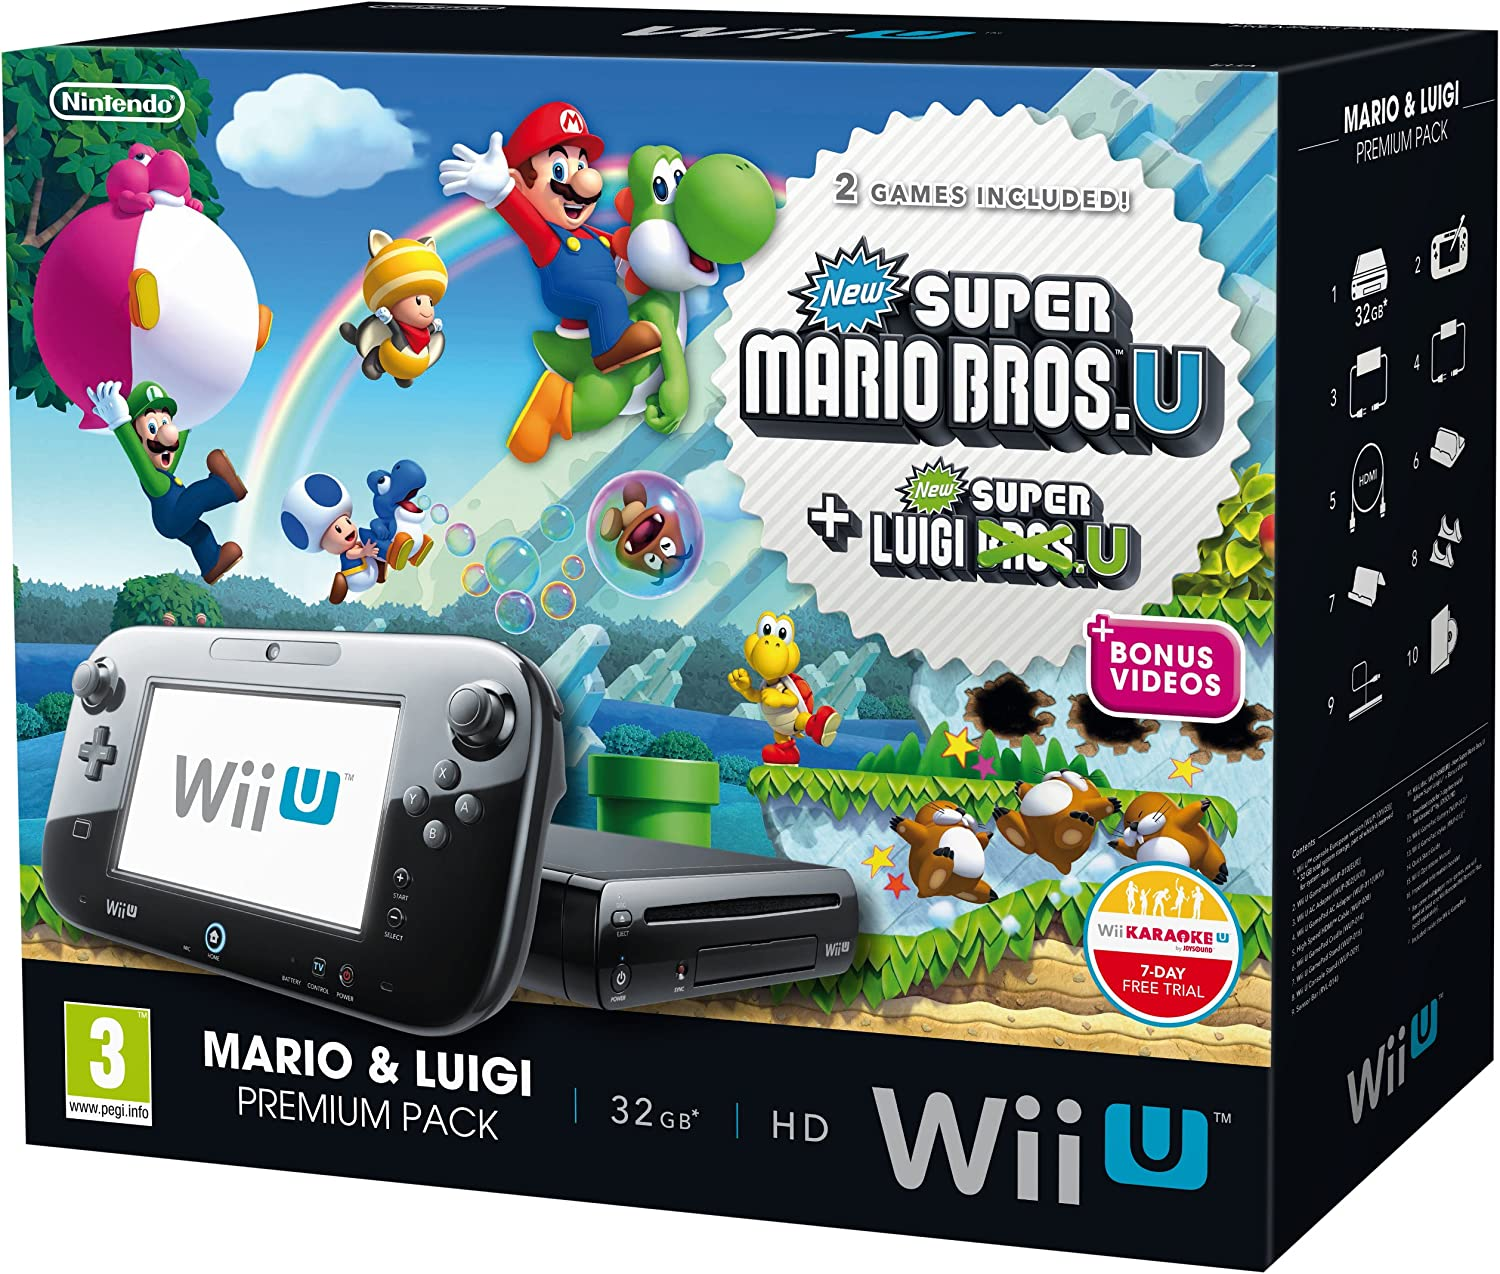 Nintendo Wii U 32Gb New Super Mario Bros And New Super Luigi Bros Premium Pack - Black (Nintendo Wii U) [Importación Inglesa]: Amazon.es: Videojuegos